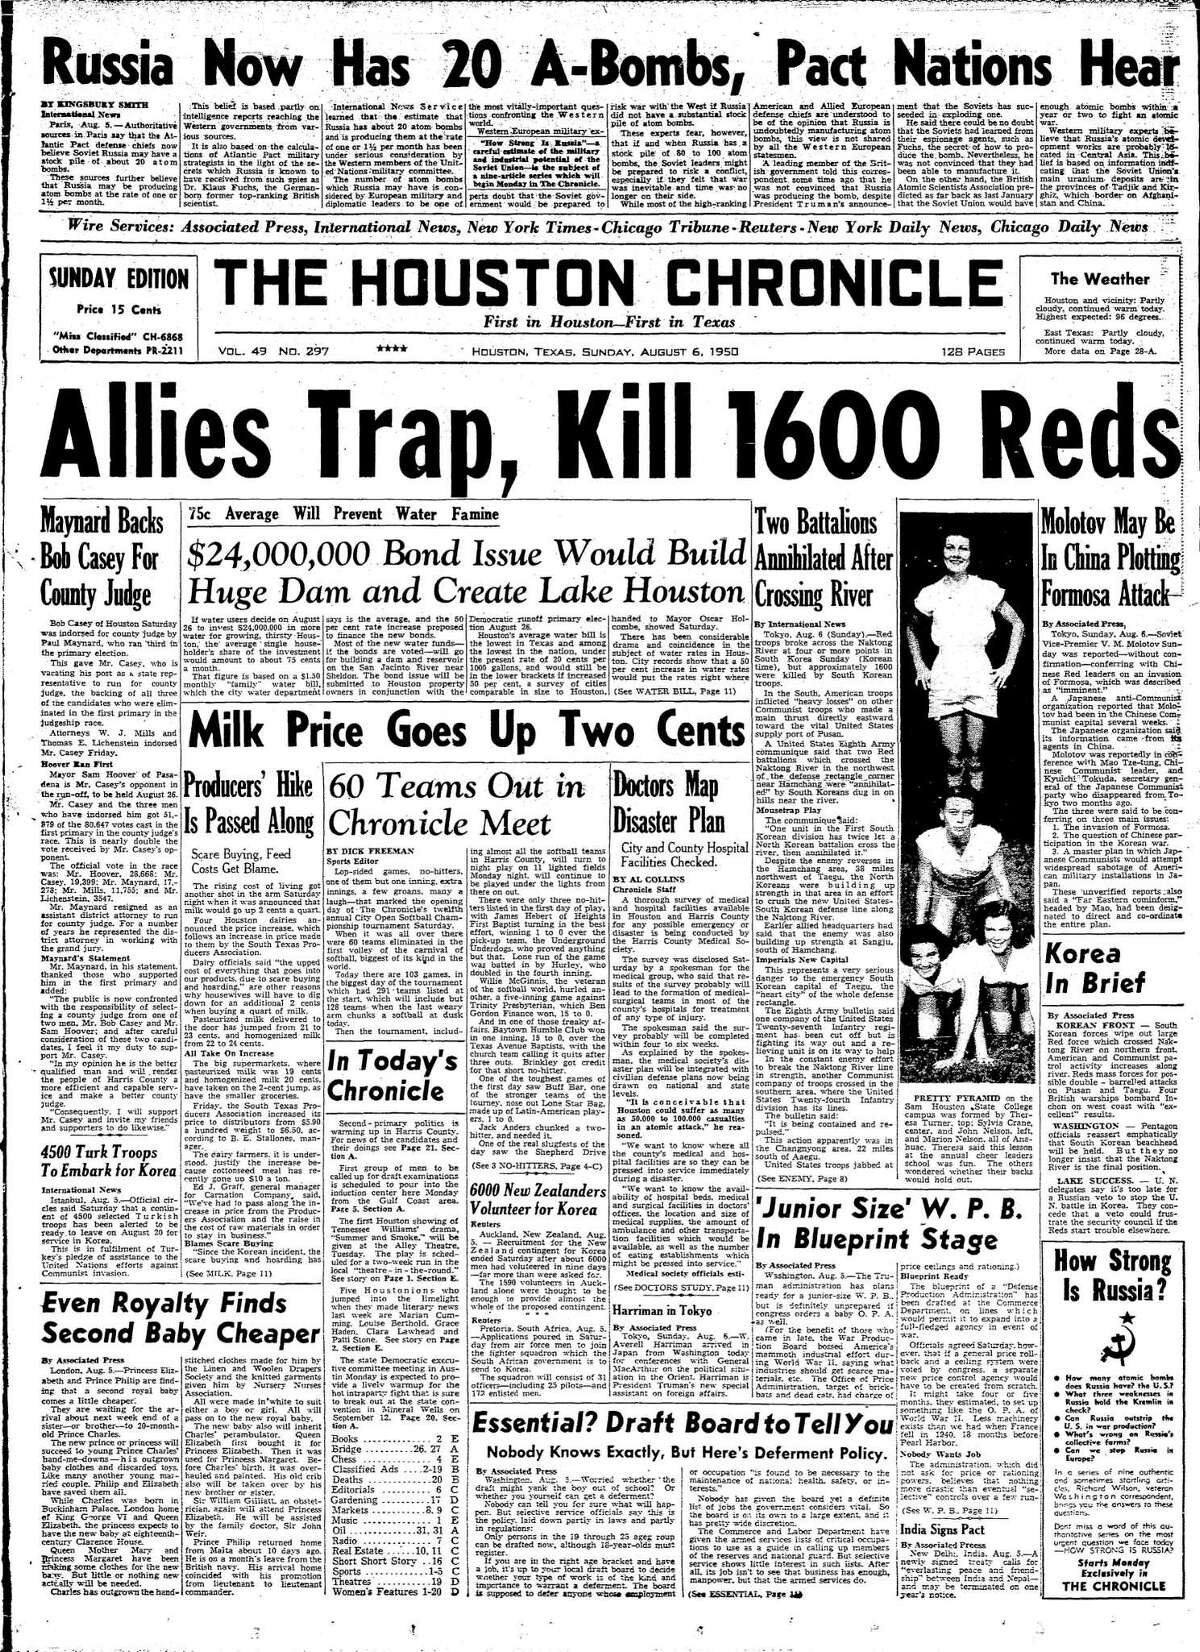 Houston Chronicle front page - August 6, 1950 - section A, page 1. $24,000,000 Bond Issue Would Build Huge Dam and Create Lake Houston